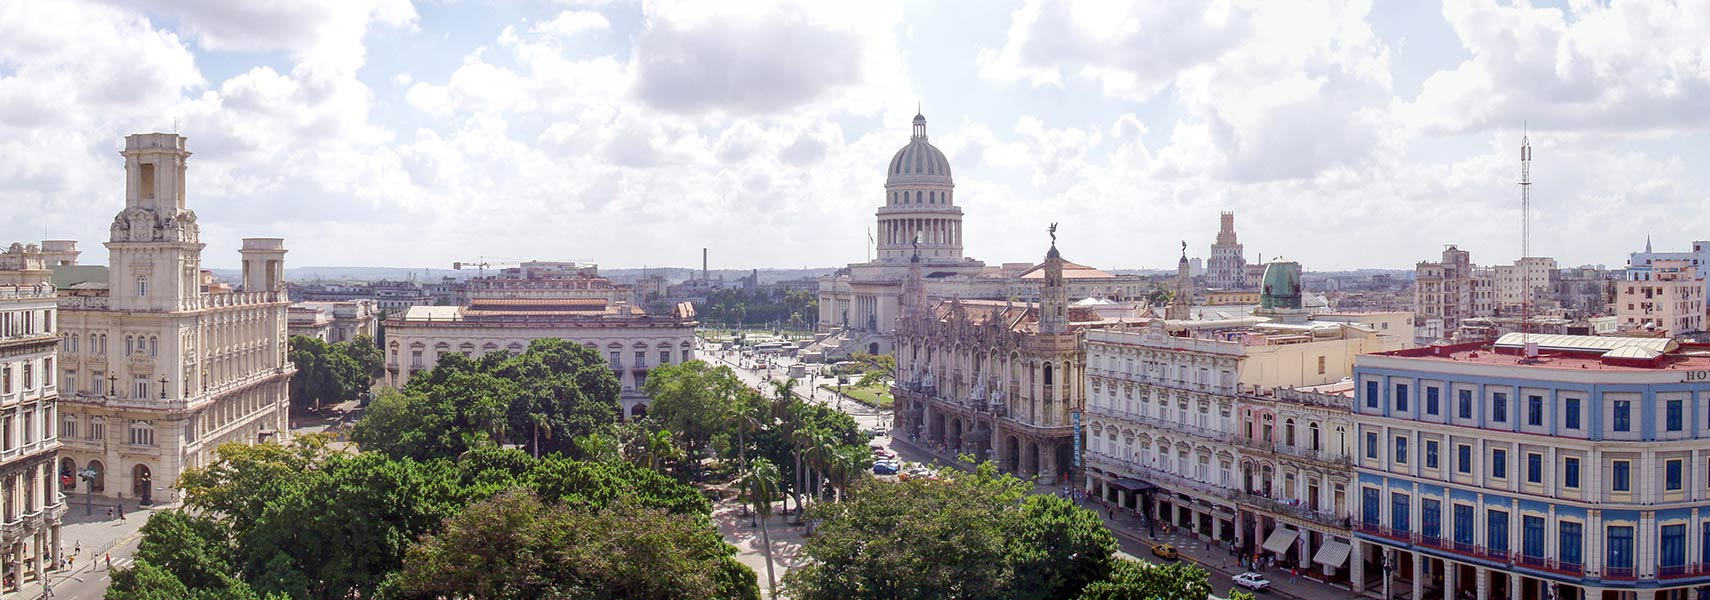 Google Map of Havana, Cuba - Nations Online Project on